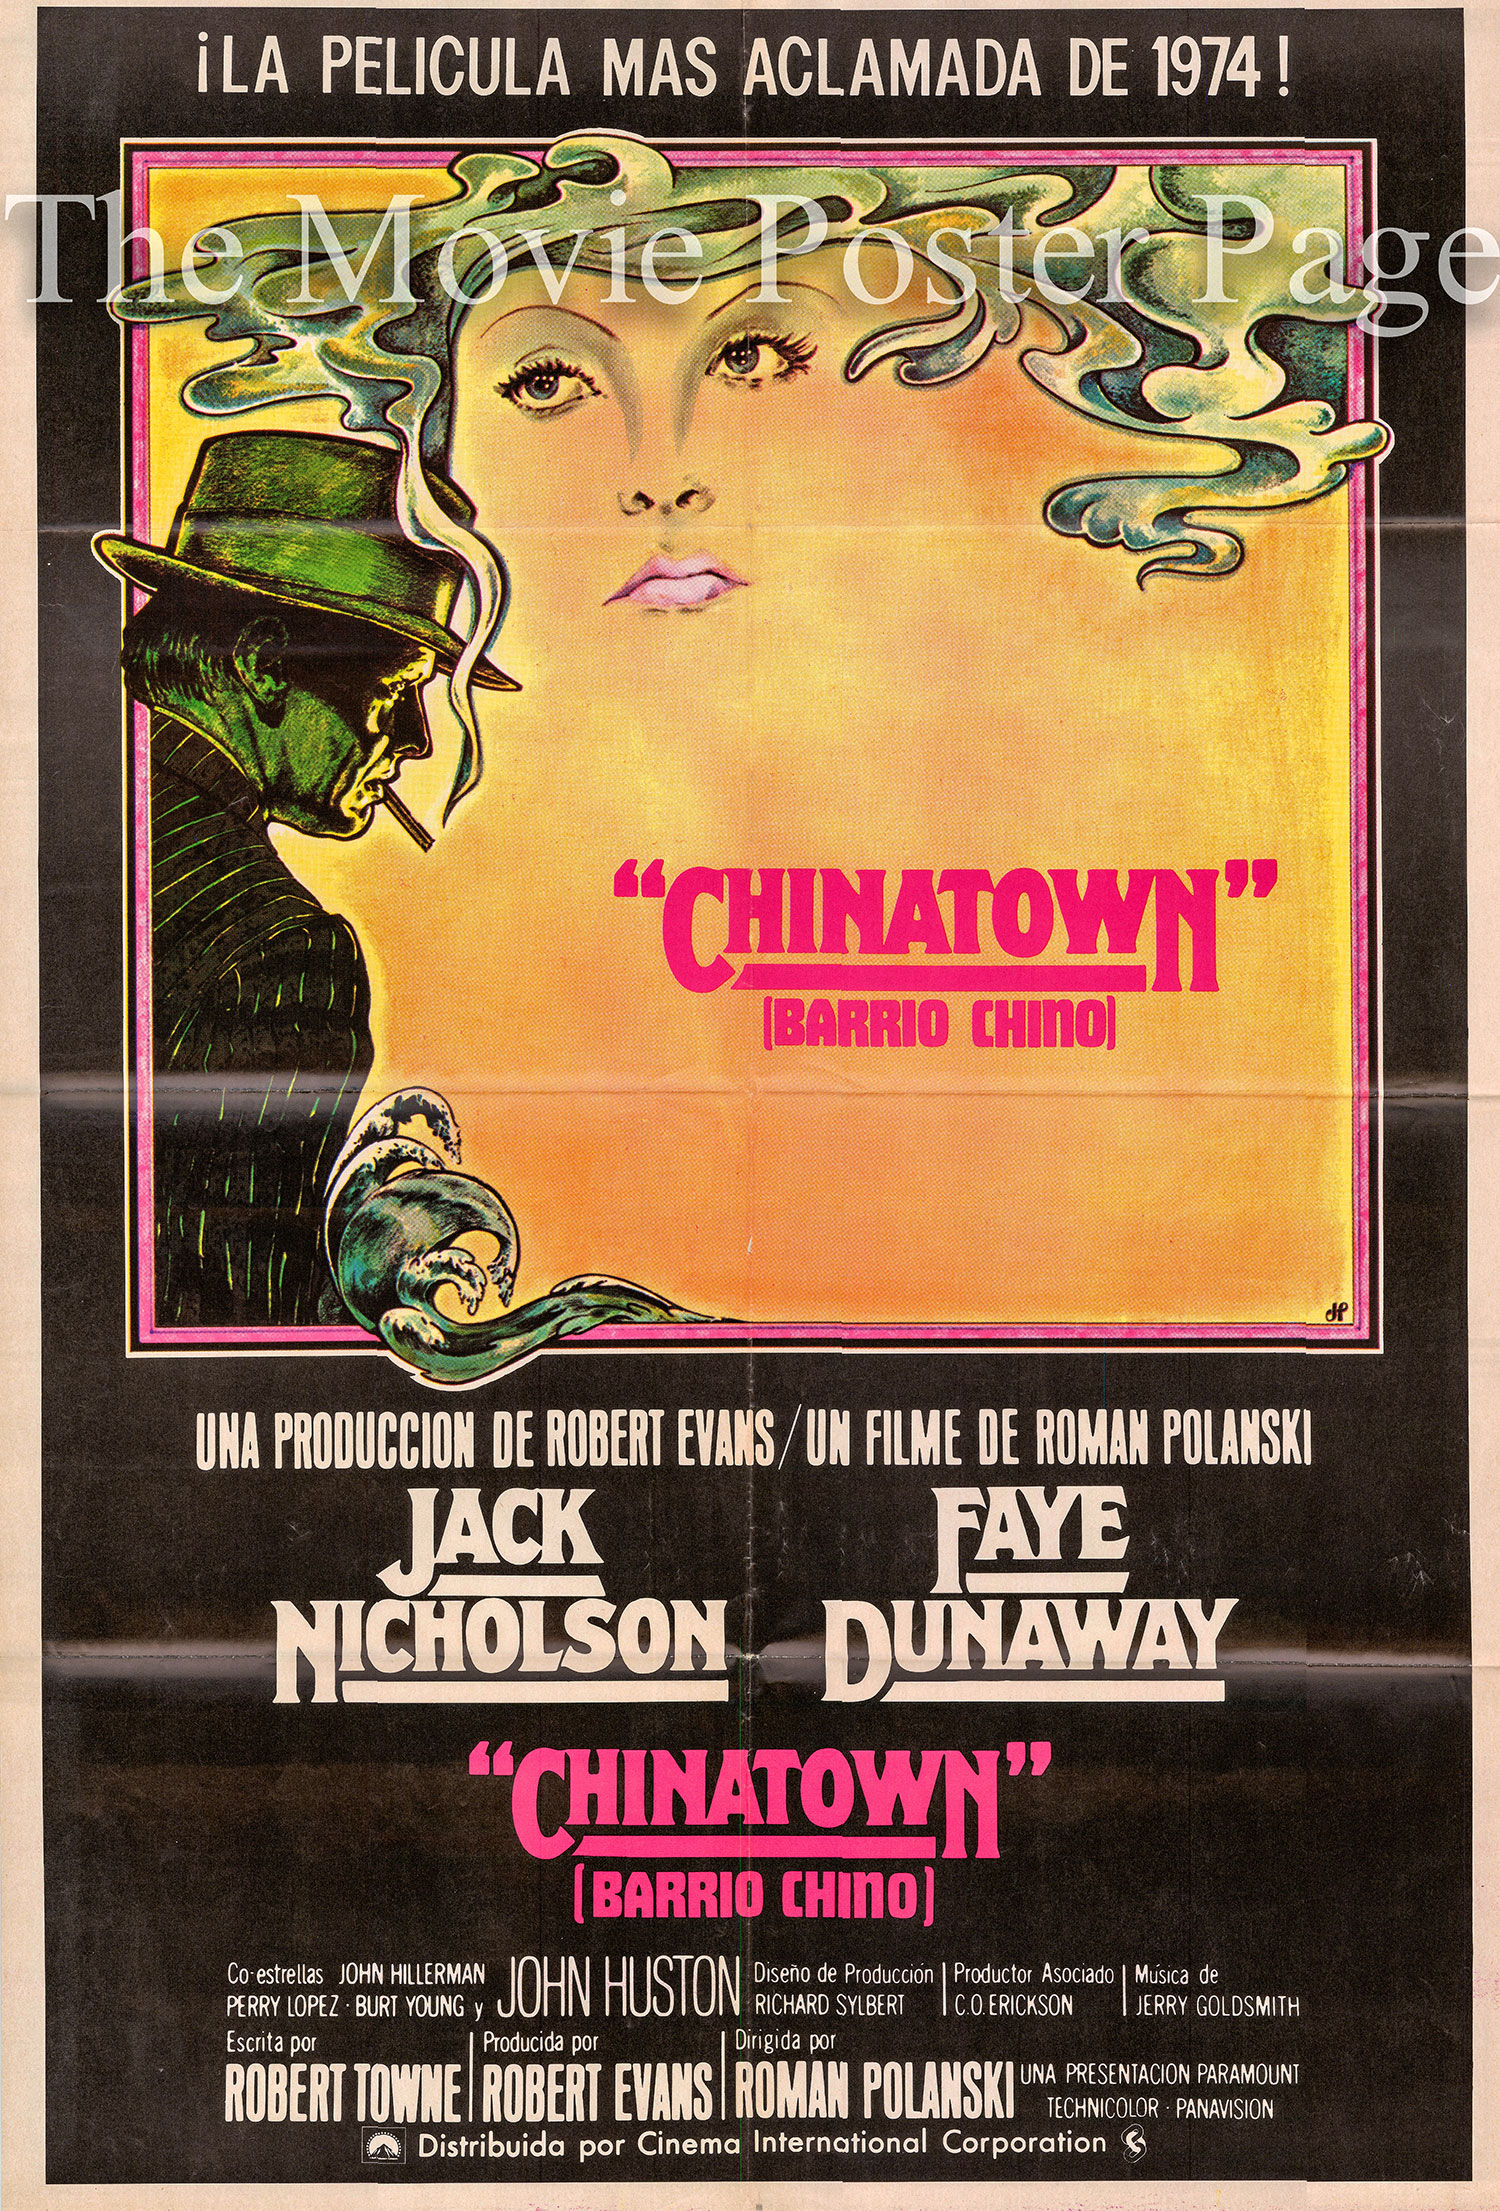 Pictured is a Spanish one-sheet poster for the 1974 Roman Polanski film Chinatown starring Jack Nicholson.